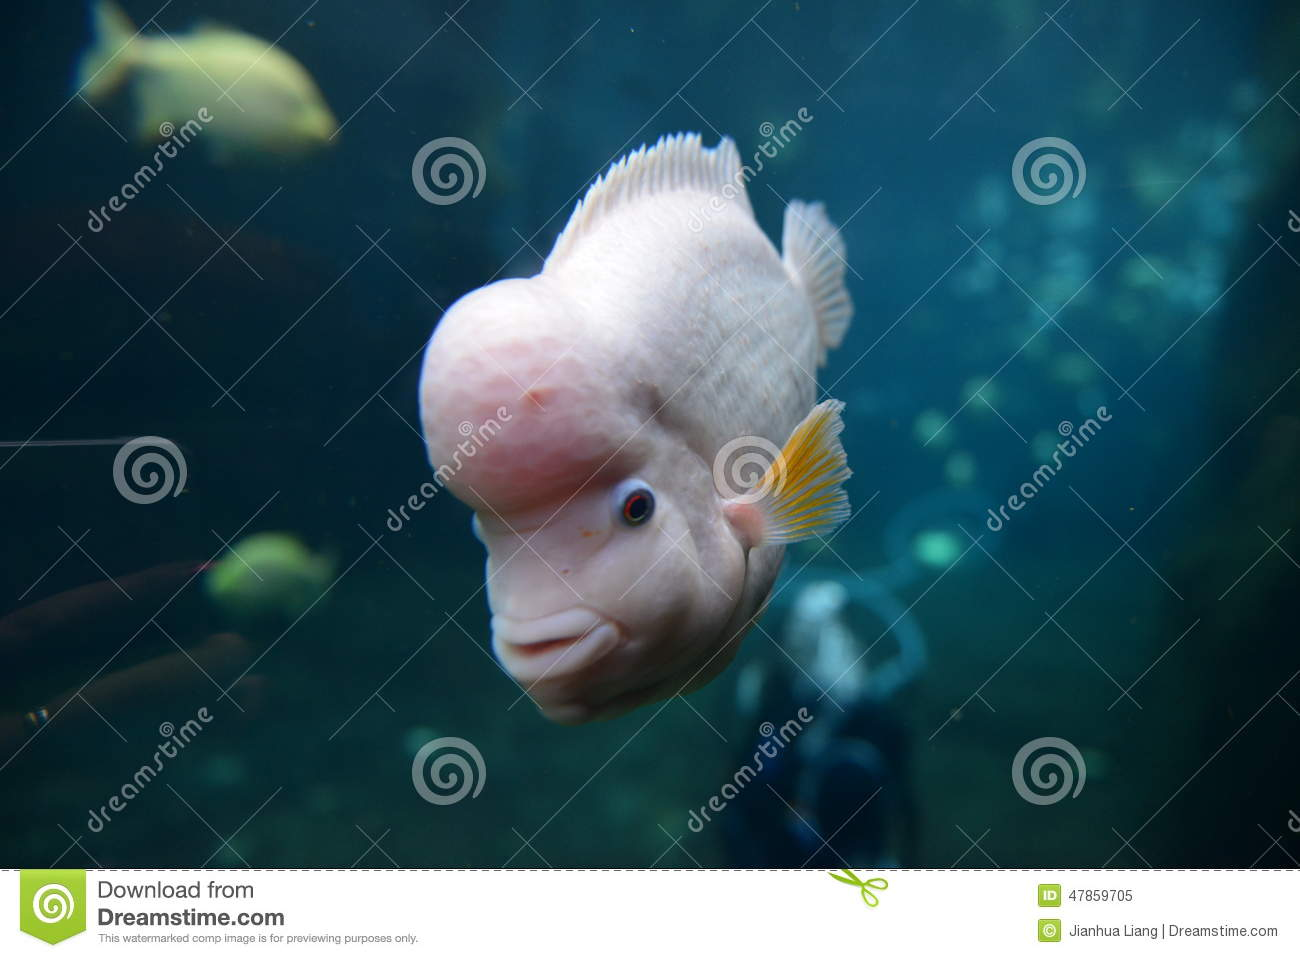 flower horn fish stock photos - royalty free images